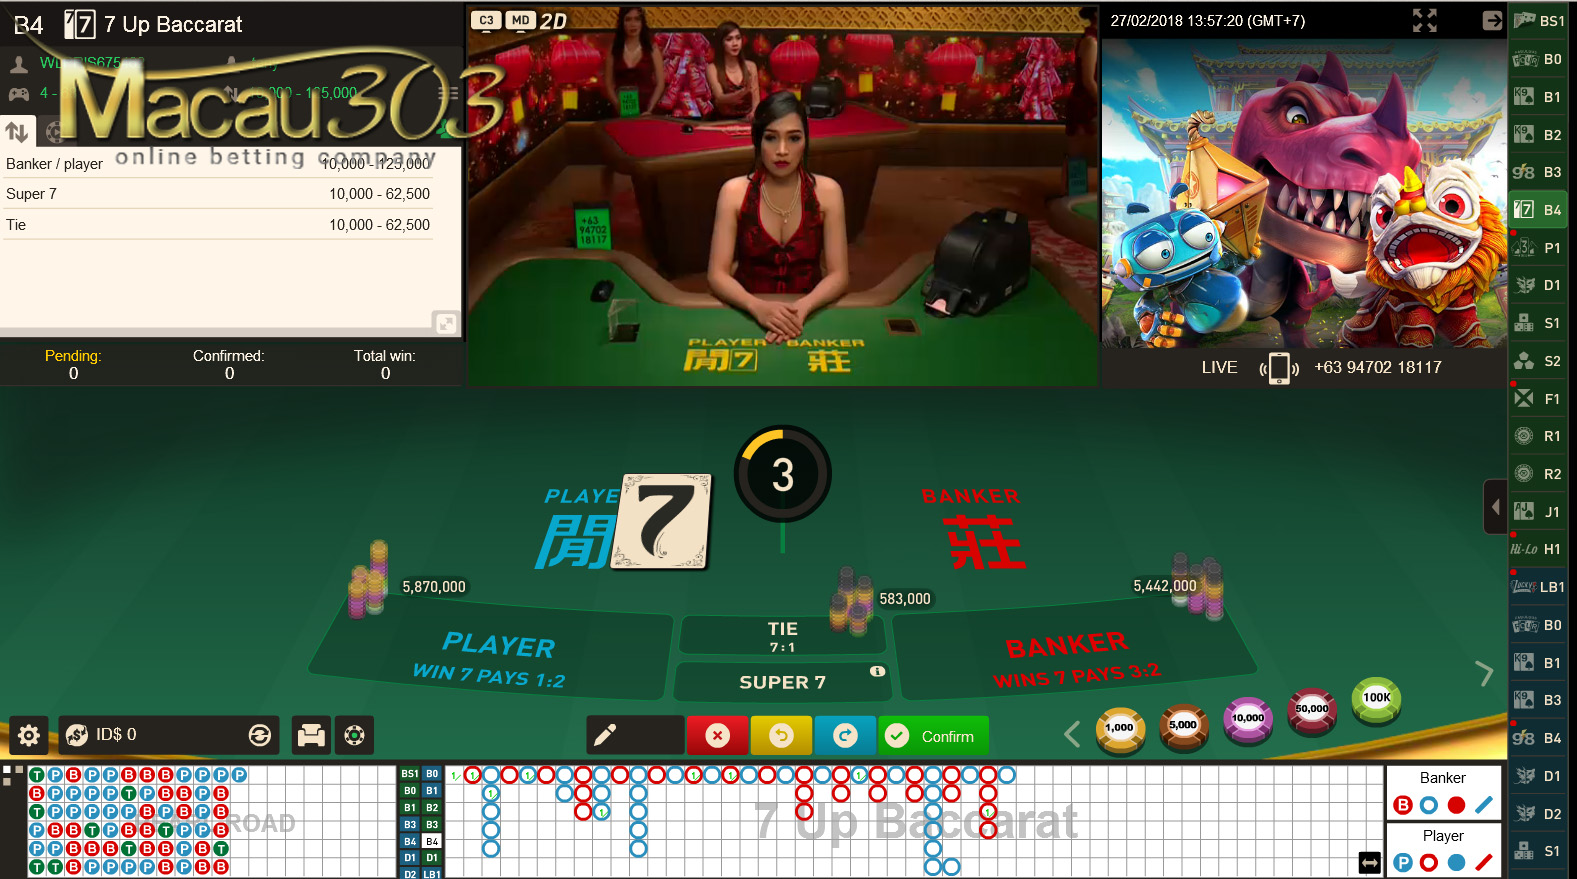 Live Casino Kartu 7UP Baccarat